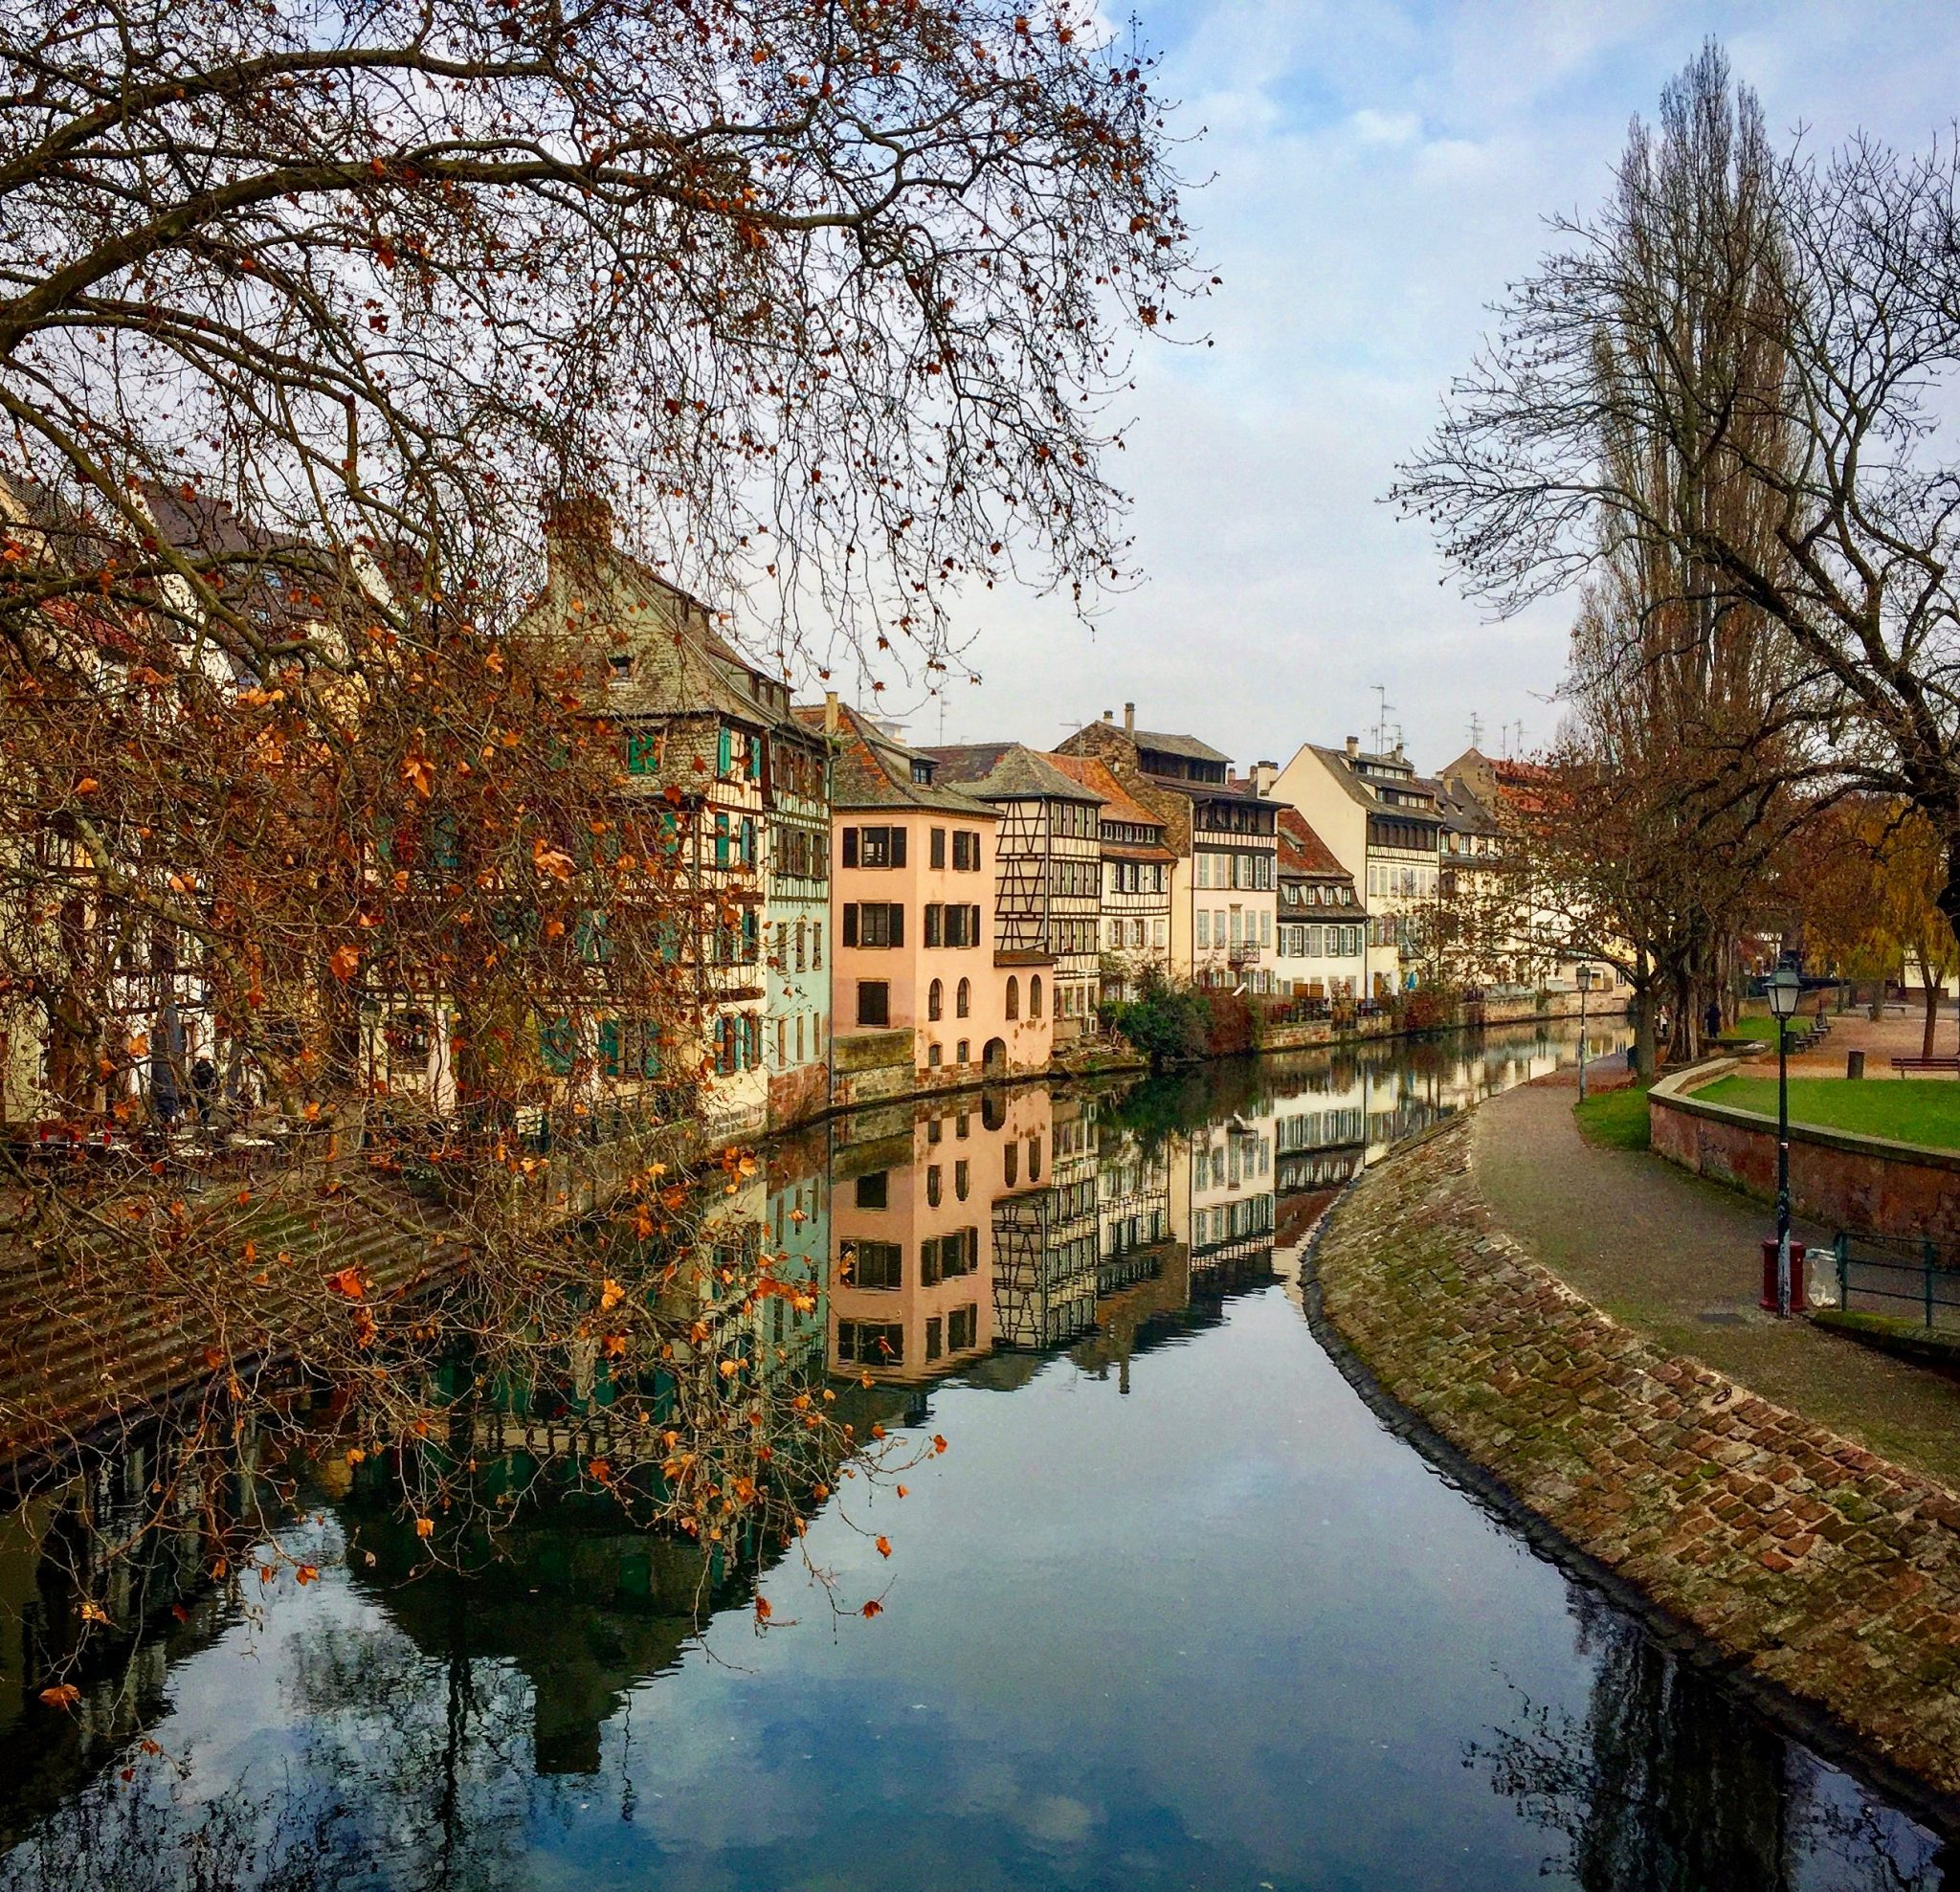 Strasbourg, France is a winter hidden gem in Europe